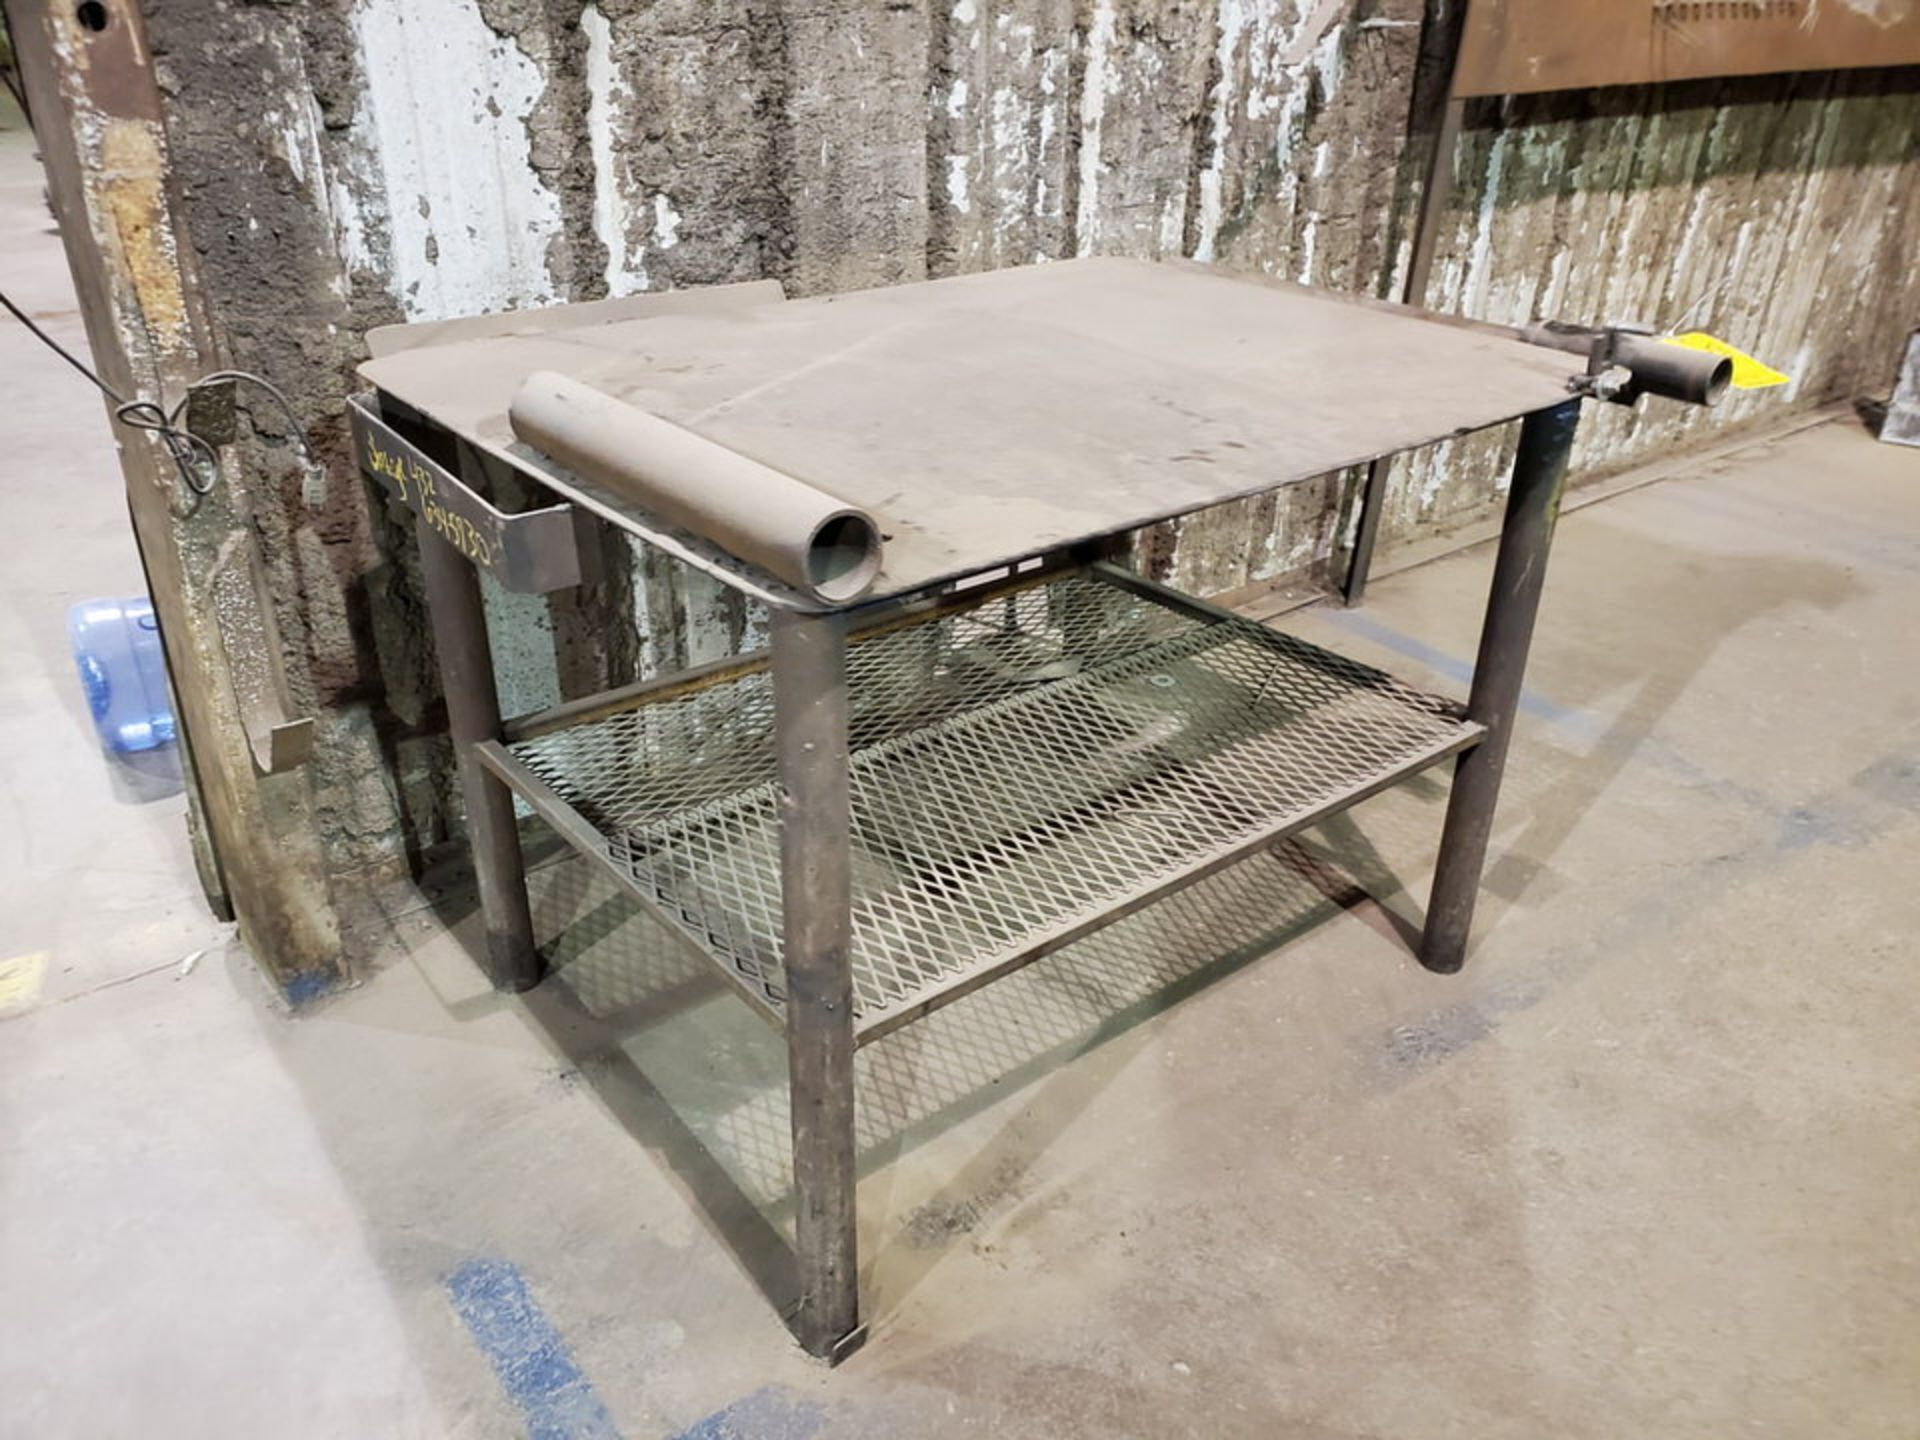 """Stl Welding Table 40"""" x 53"""" x 34""""H - Image 3 of 4"""